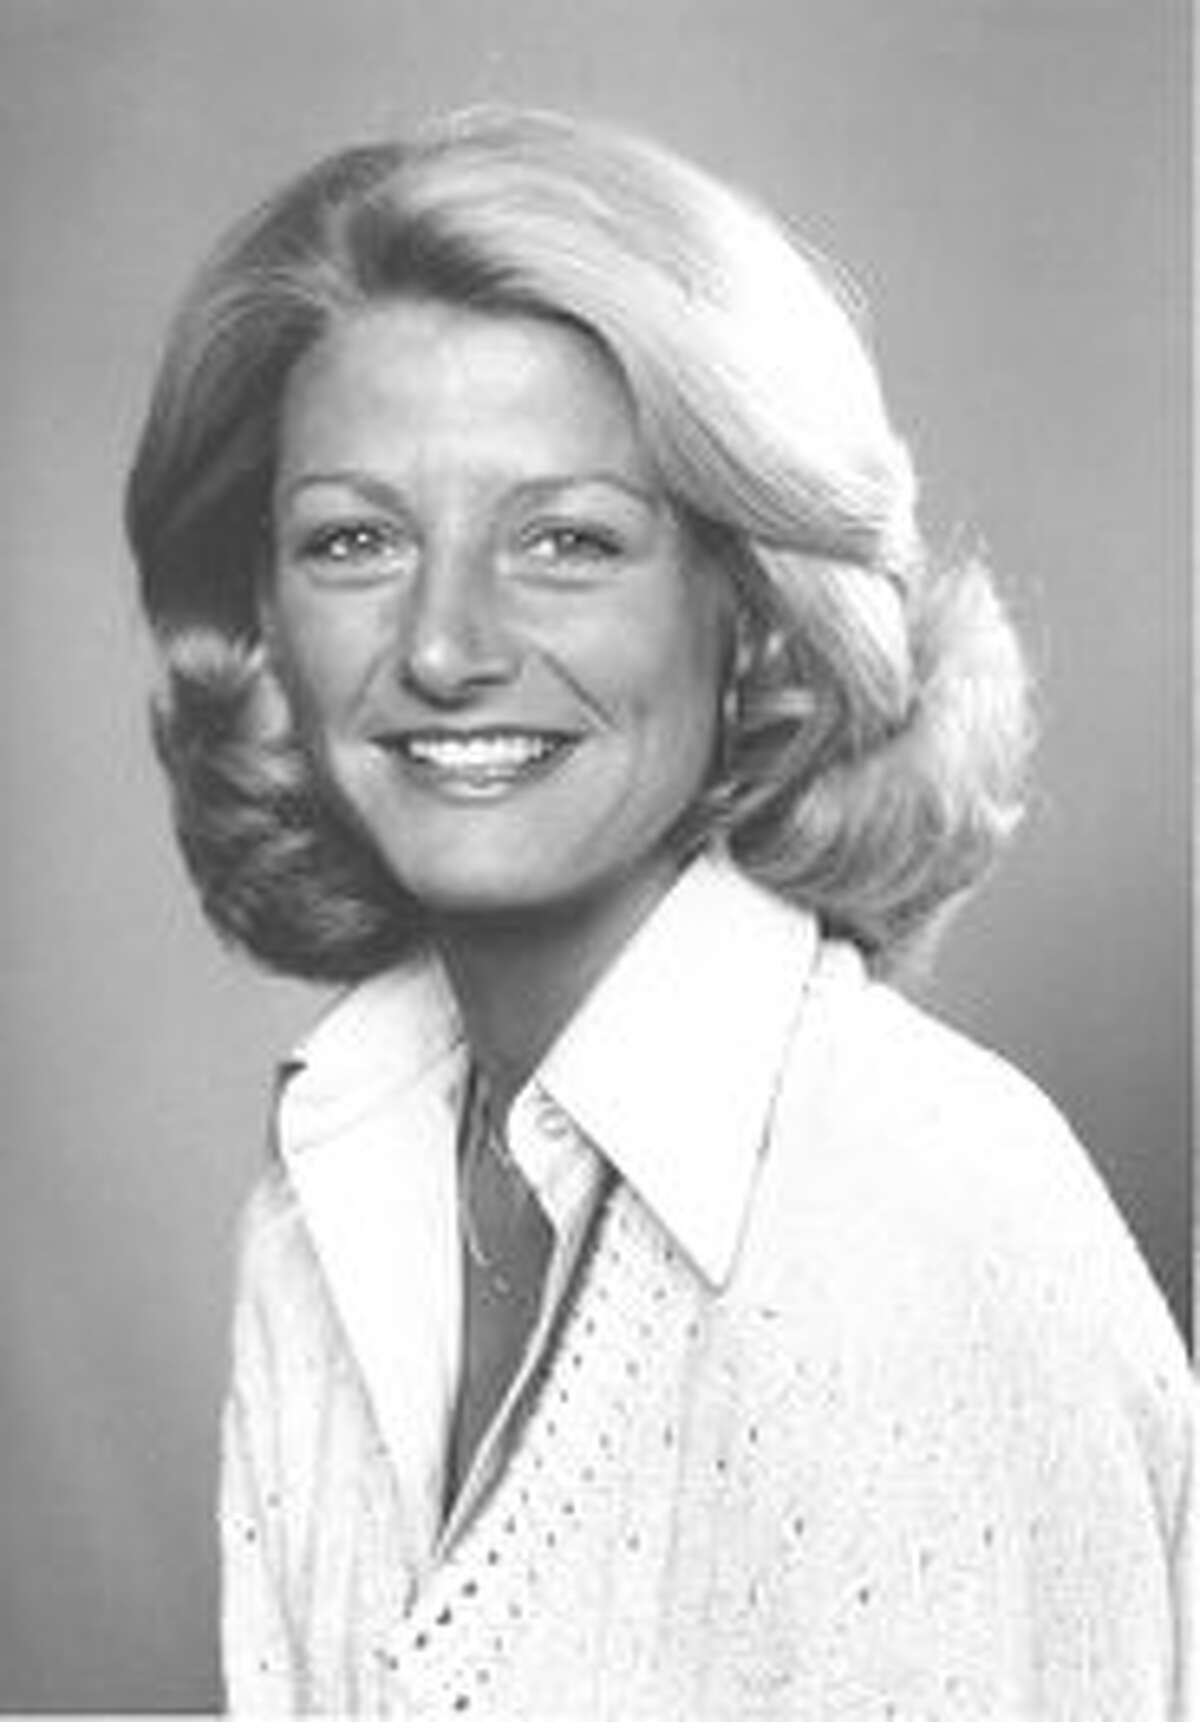 Jean Enersen was promoted to KING/5 evening news anchor in 1972. She was the first female anchor woman in the country.